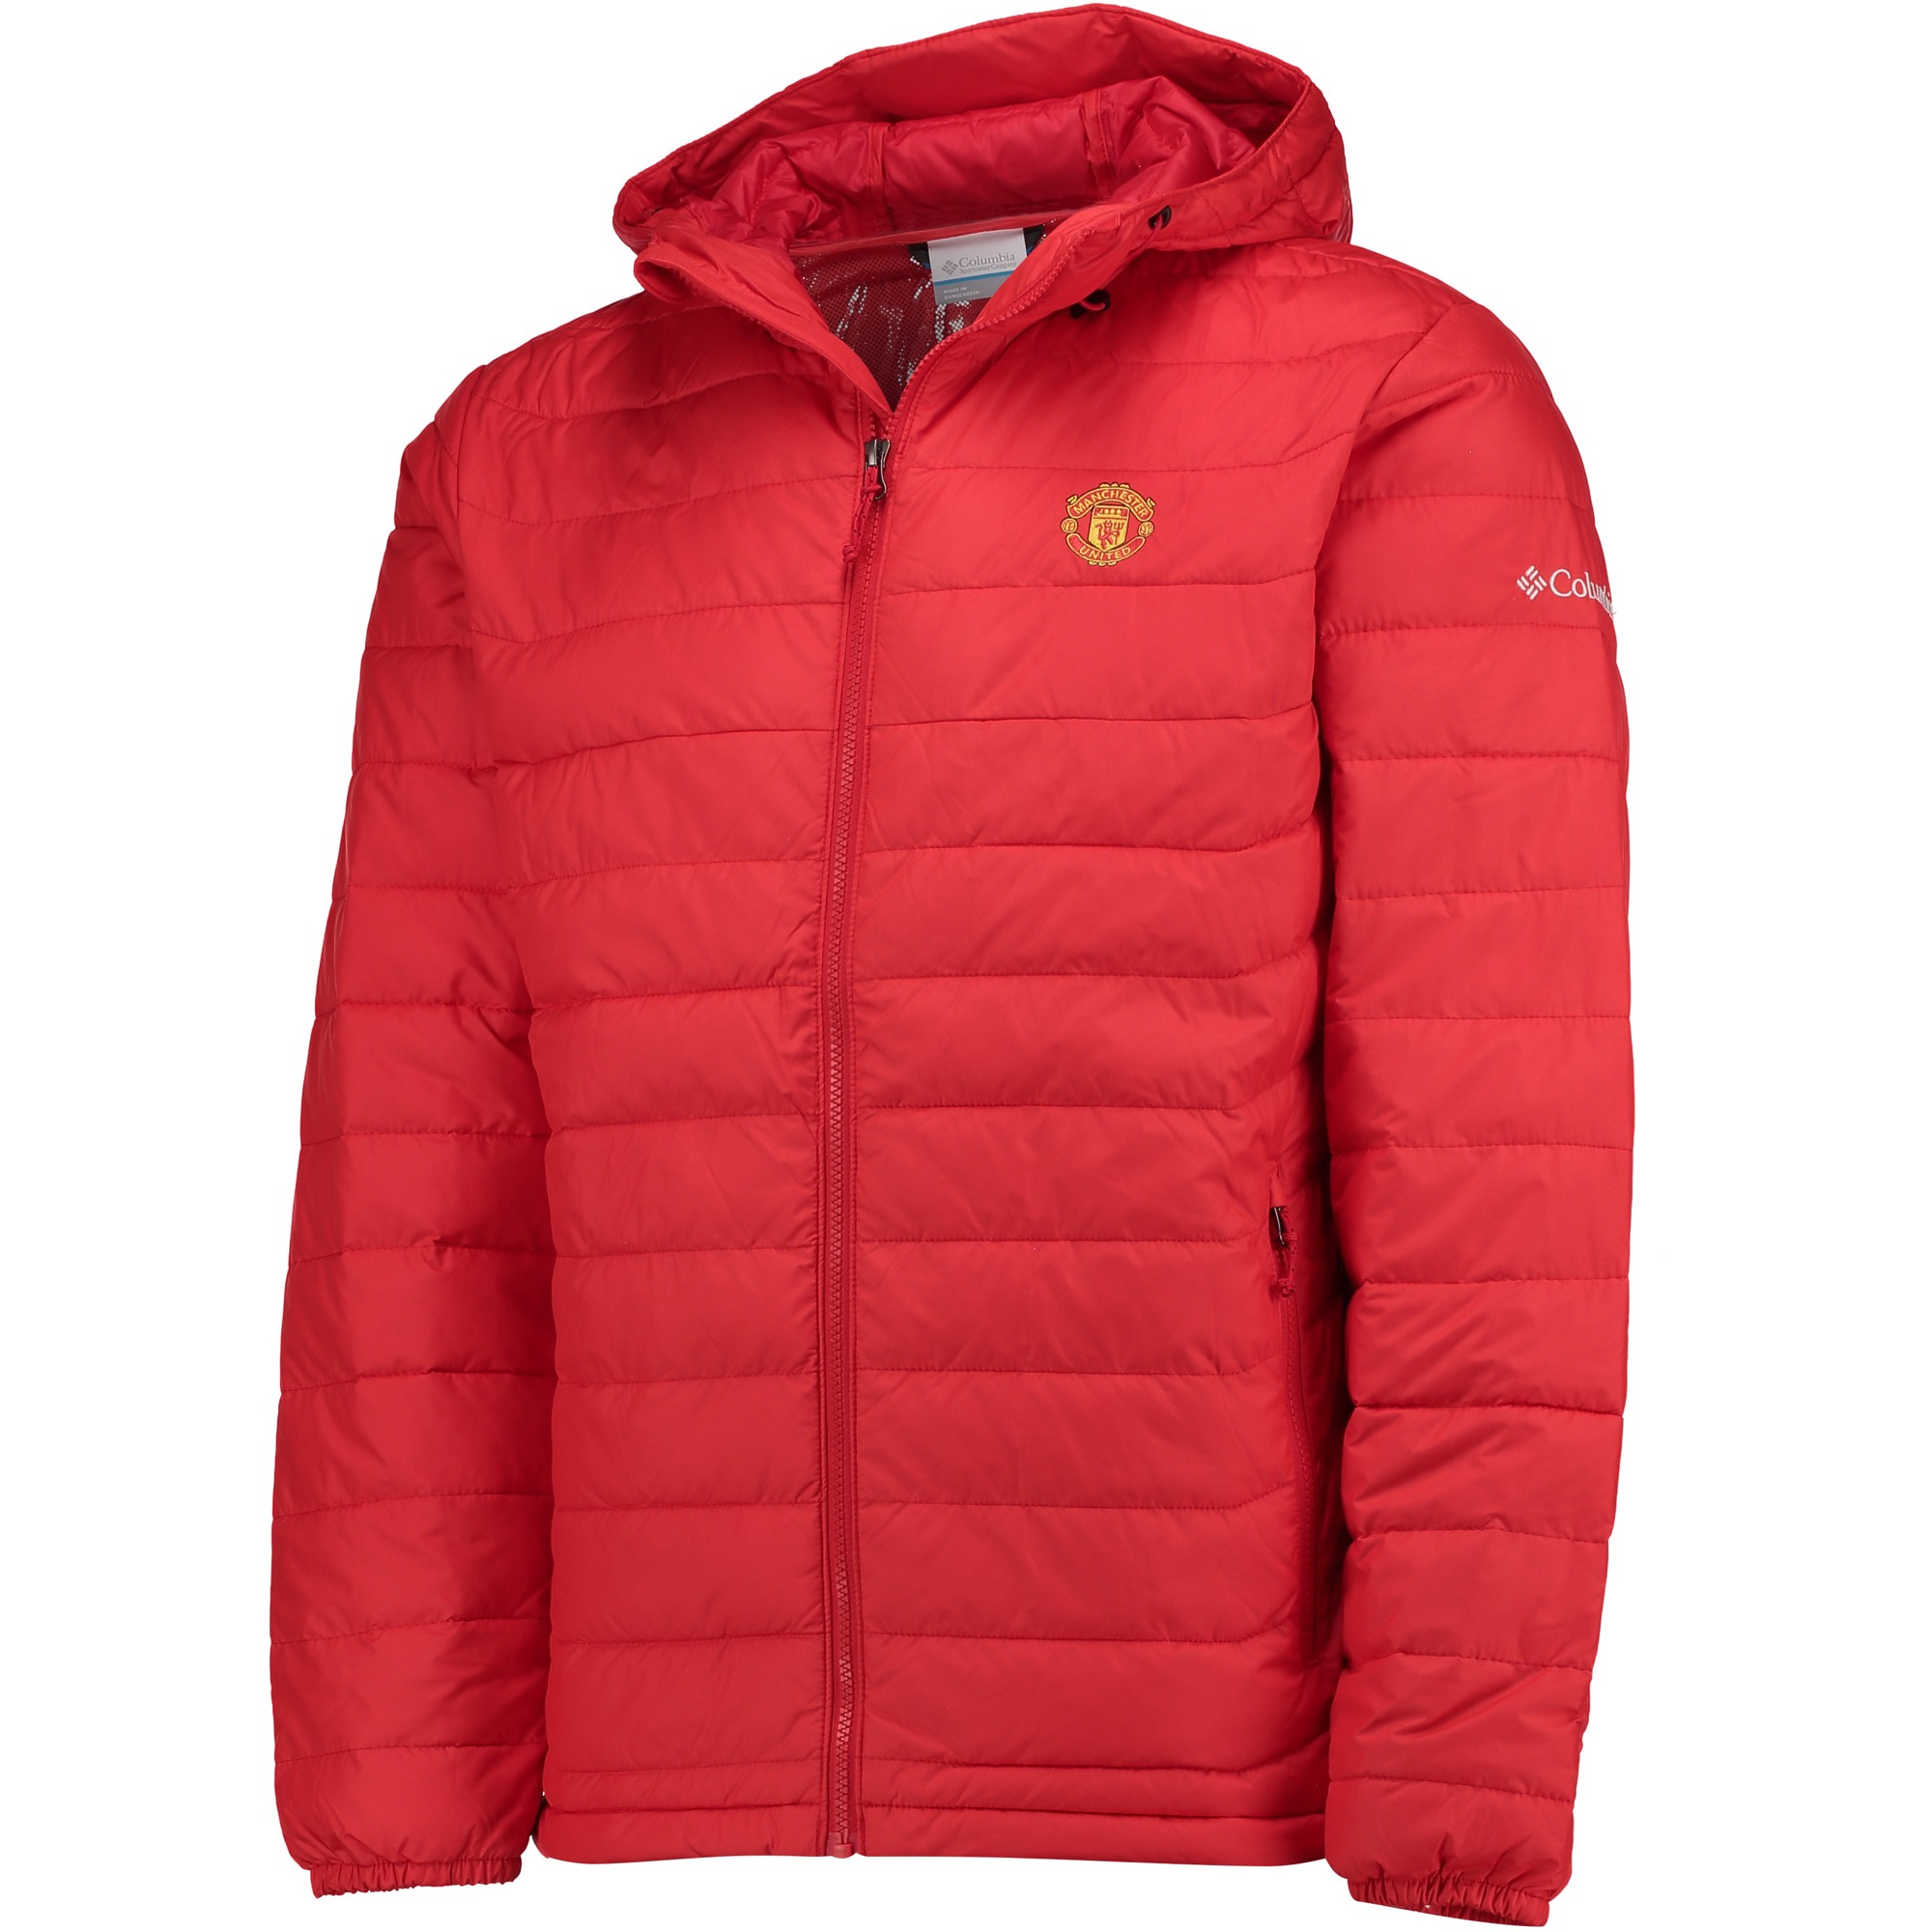 Manchester United Columbia Powder Lite Hooded Jacket - Cherrybomb - Me